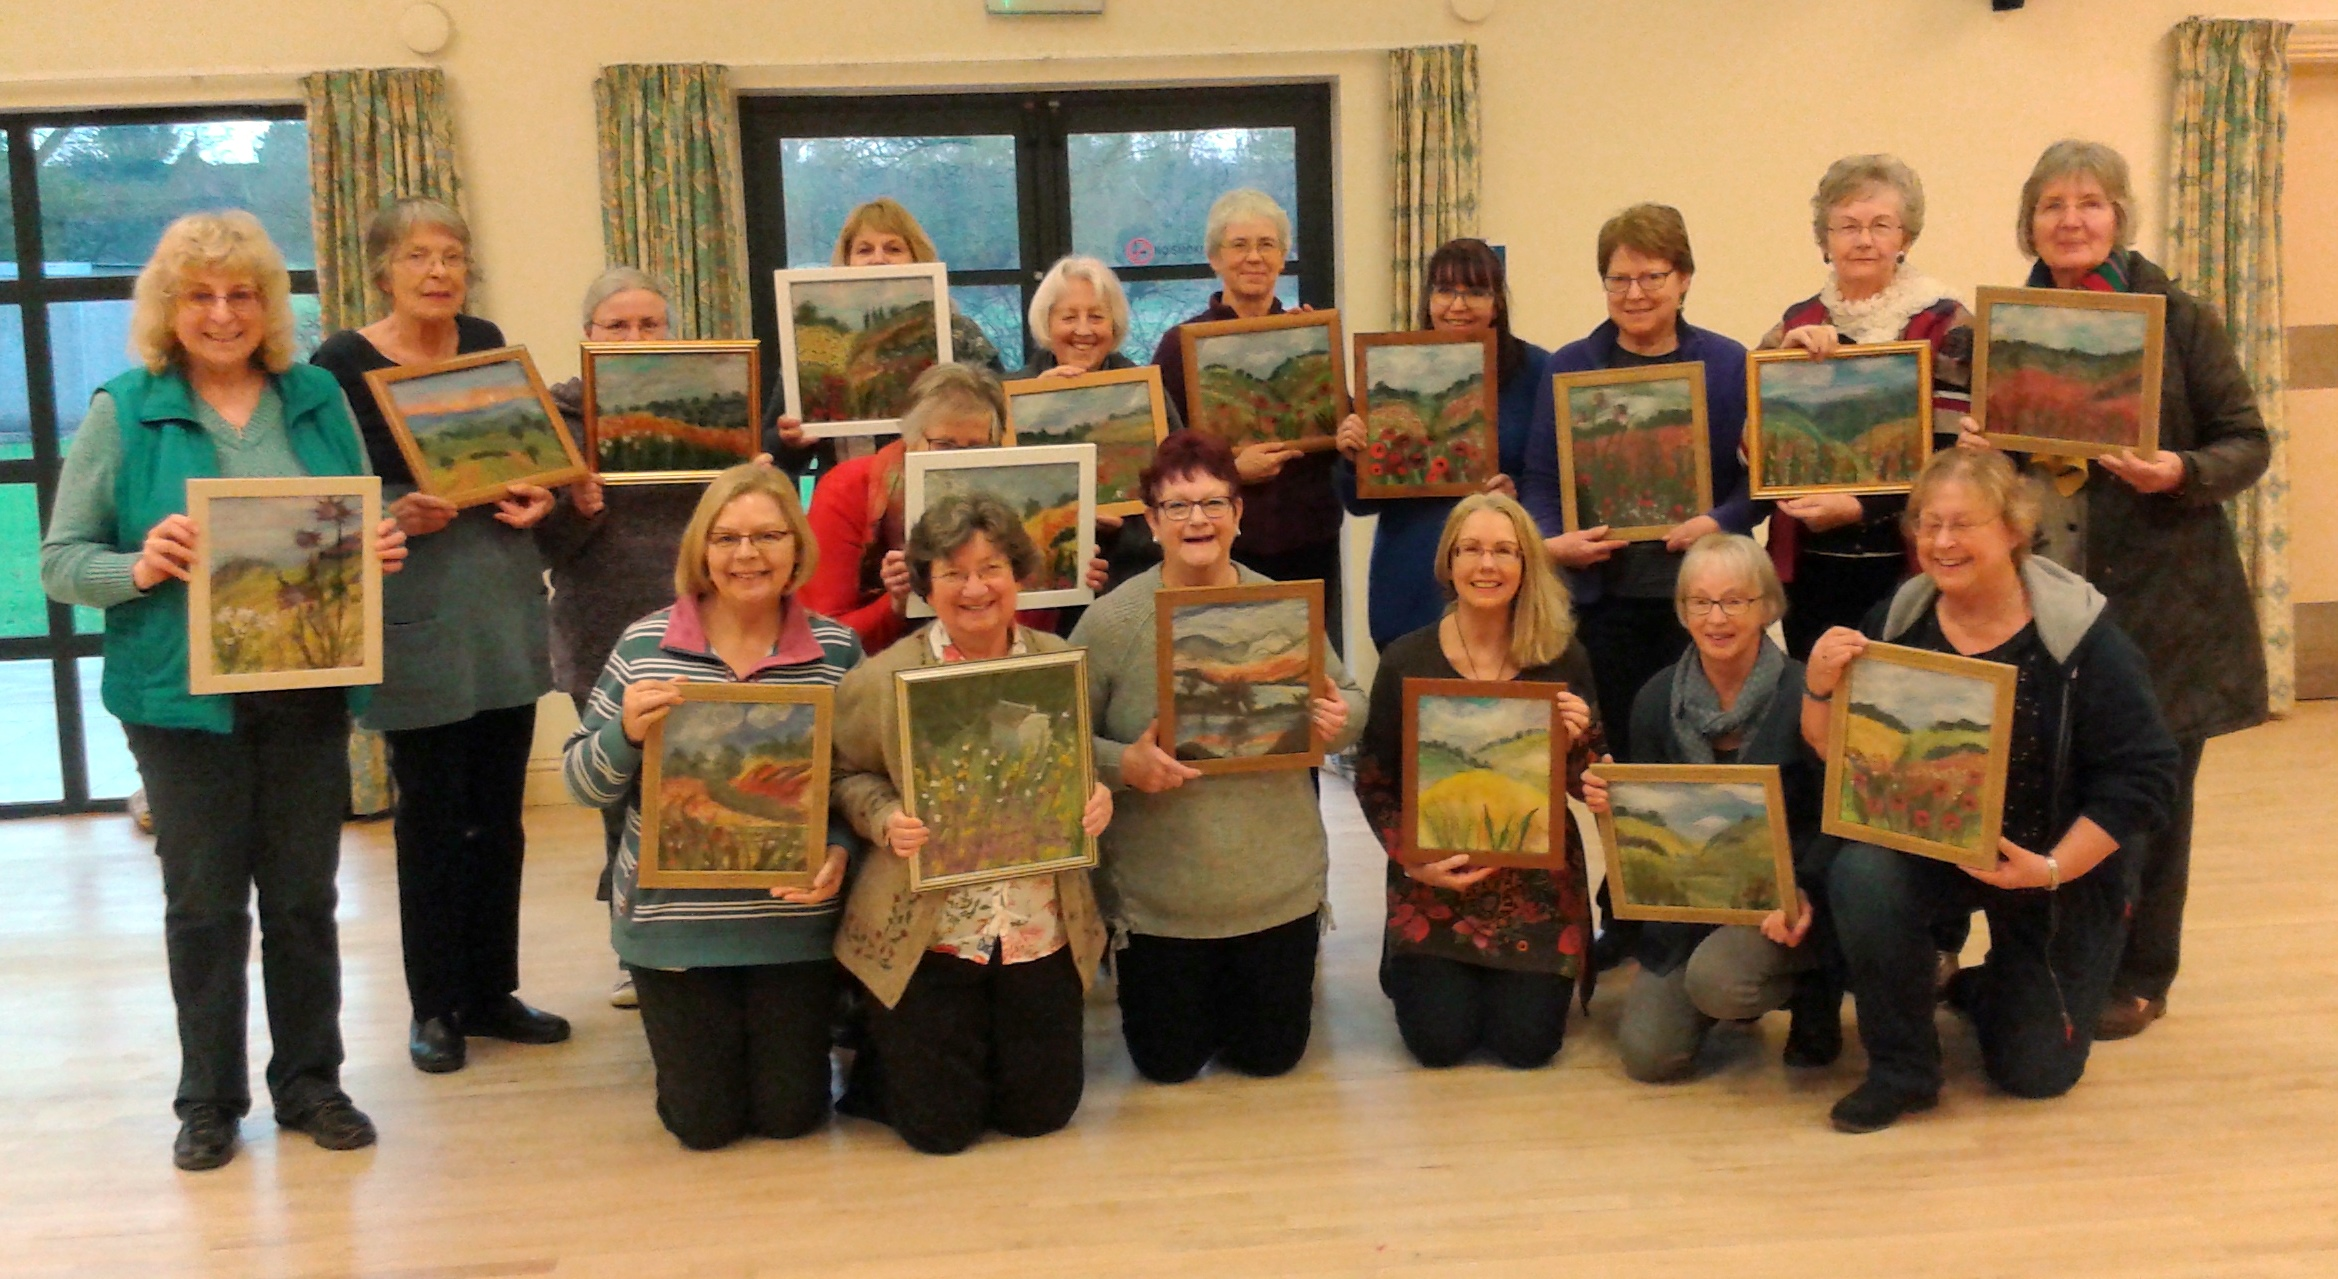 Cotswold E G Branch of Embroiderer's Guild with their wool paintings taught by Textile Artist Raya Brown